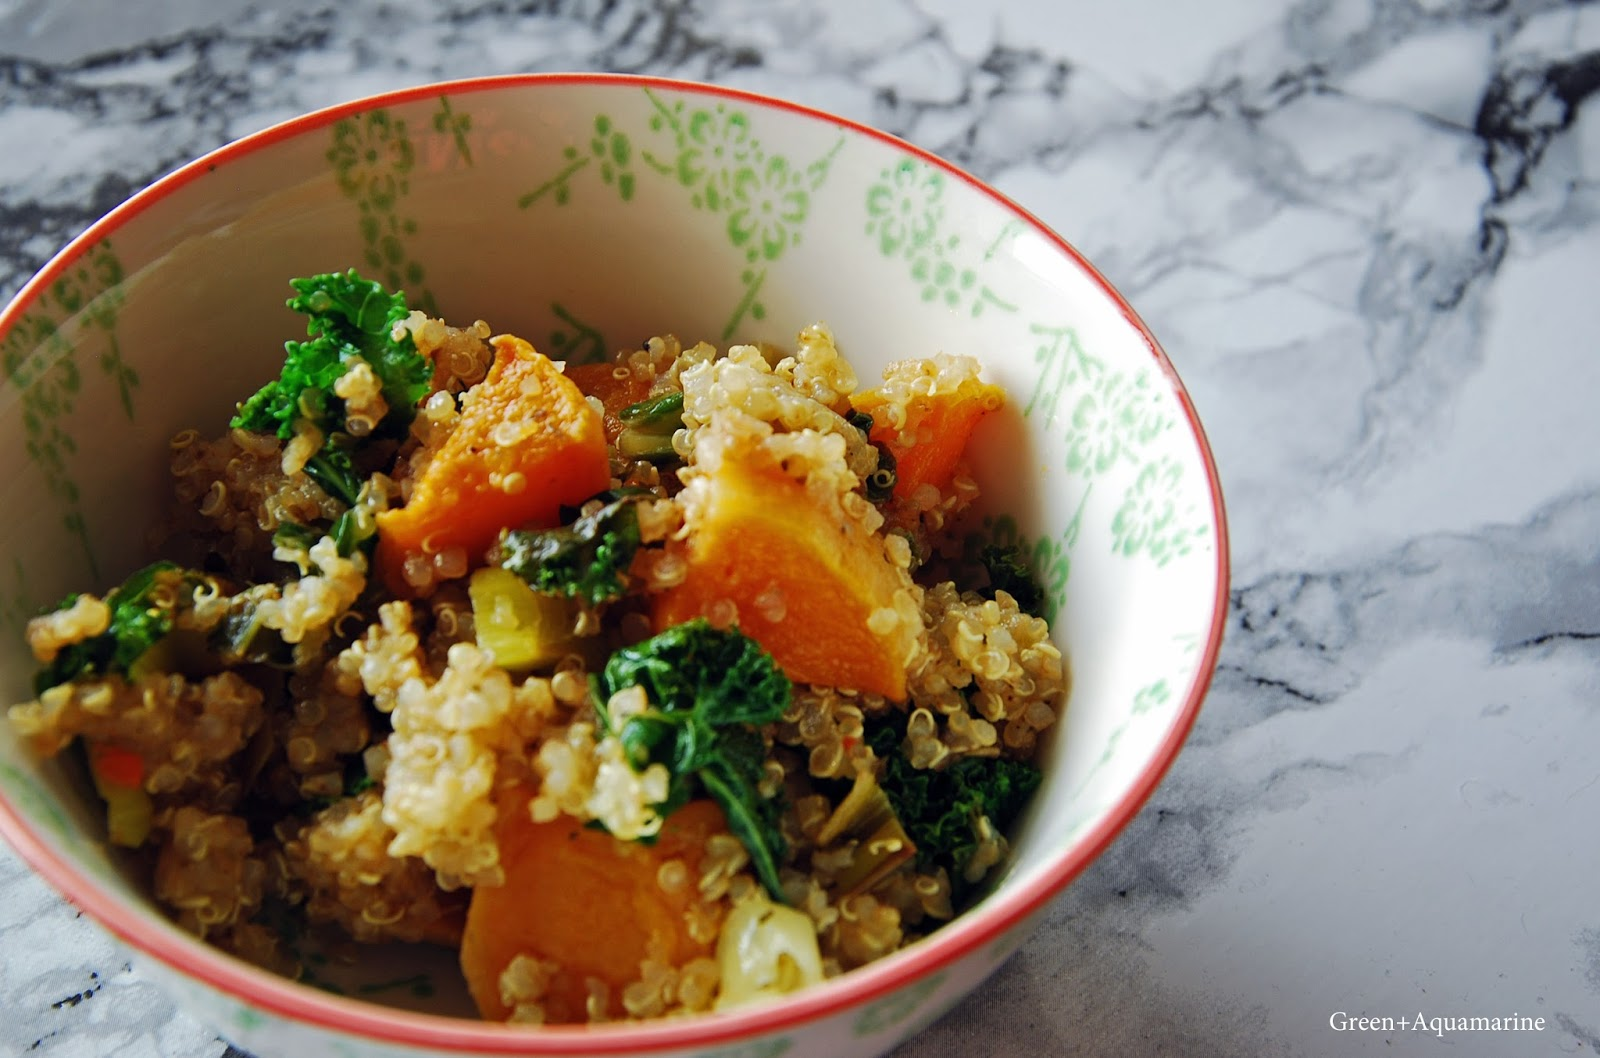 Kale, squash and quinoa savoury breakfast bowl. Via @eleanormayc